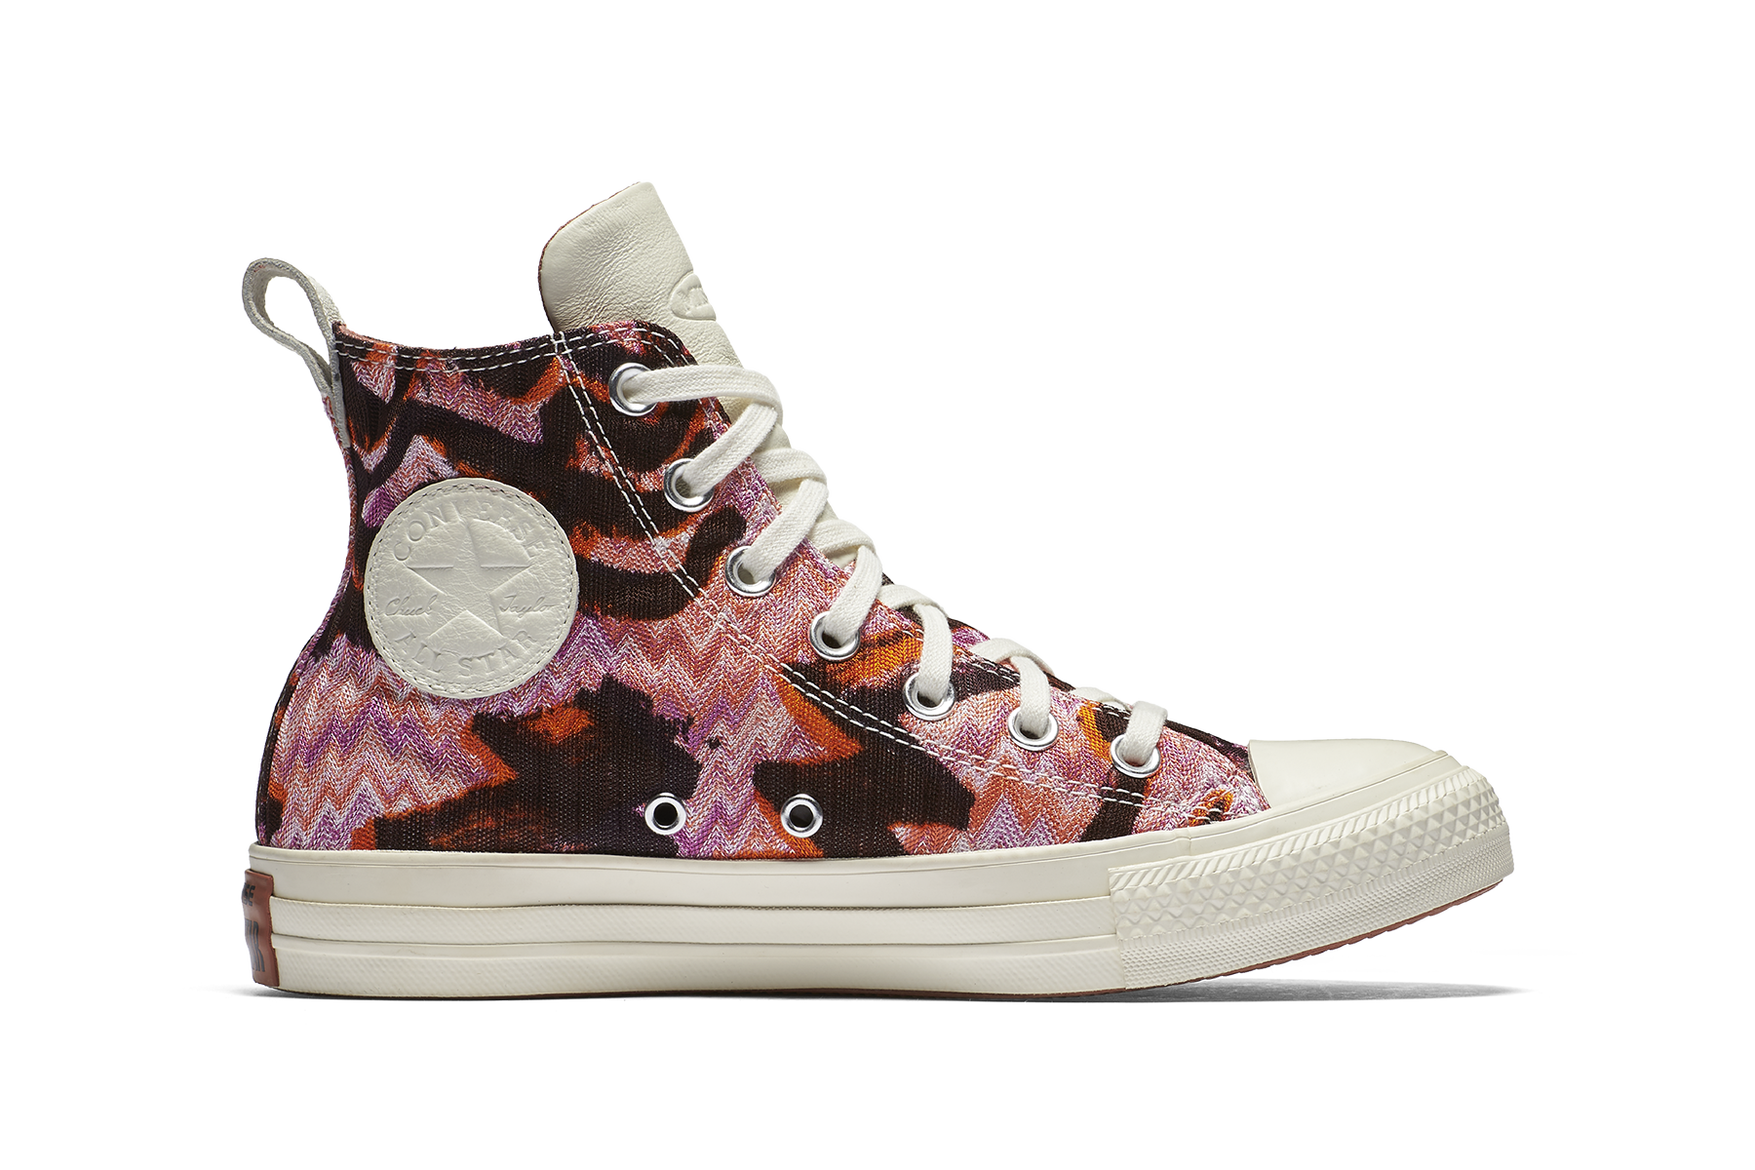 converse-missoni-chuck-taylor-all-star-high-top-5.png